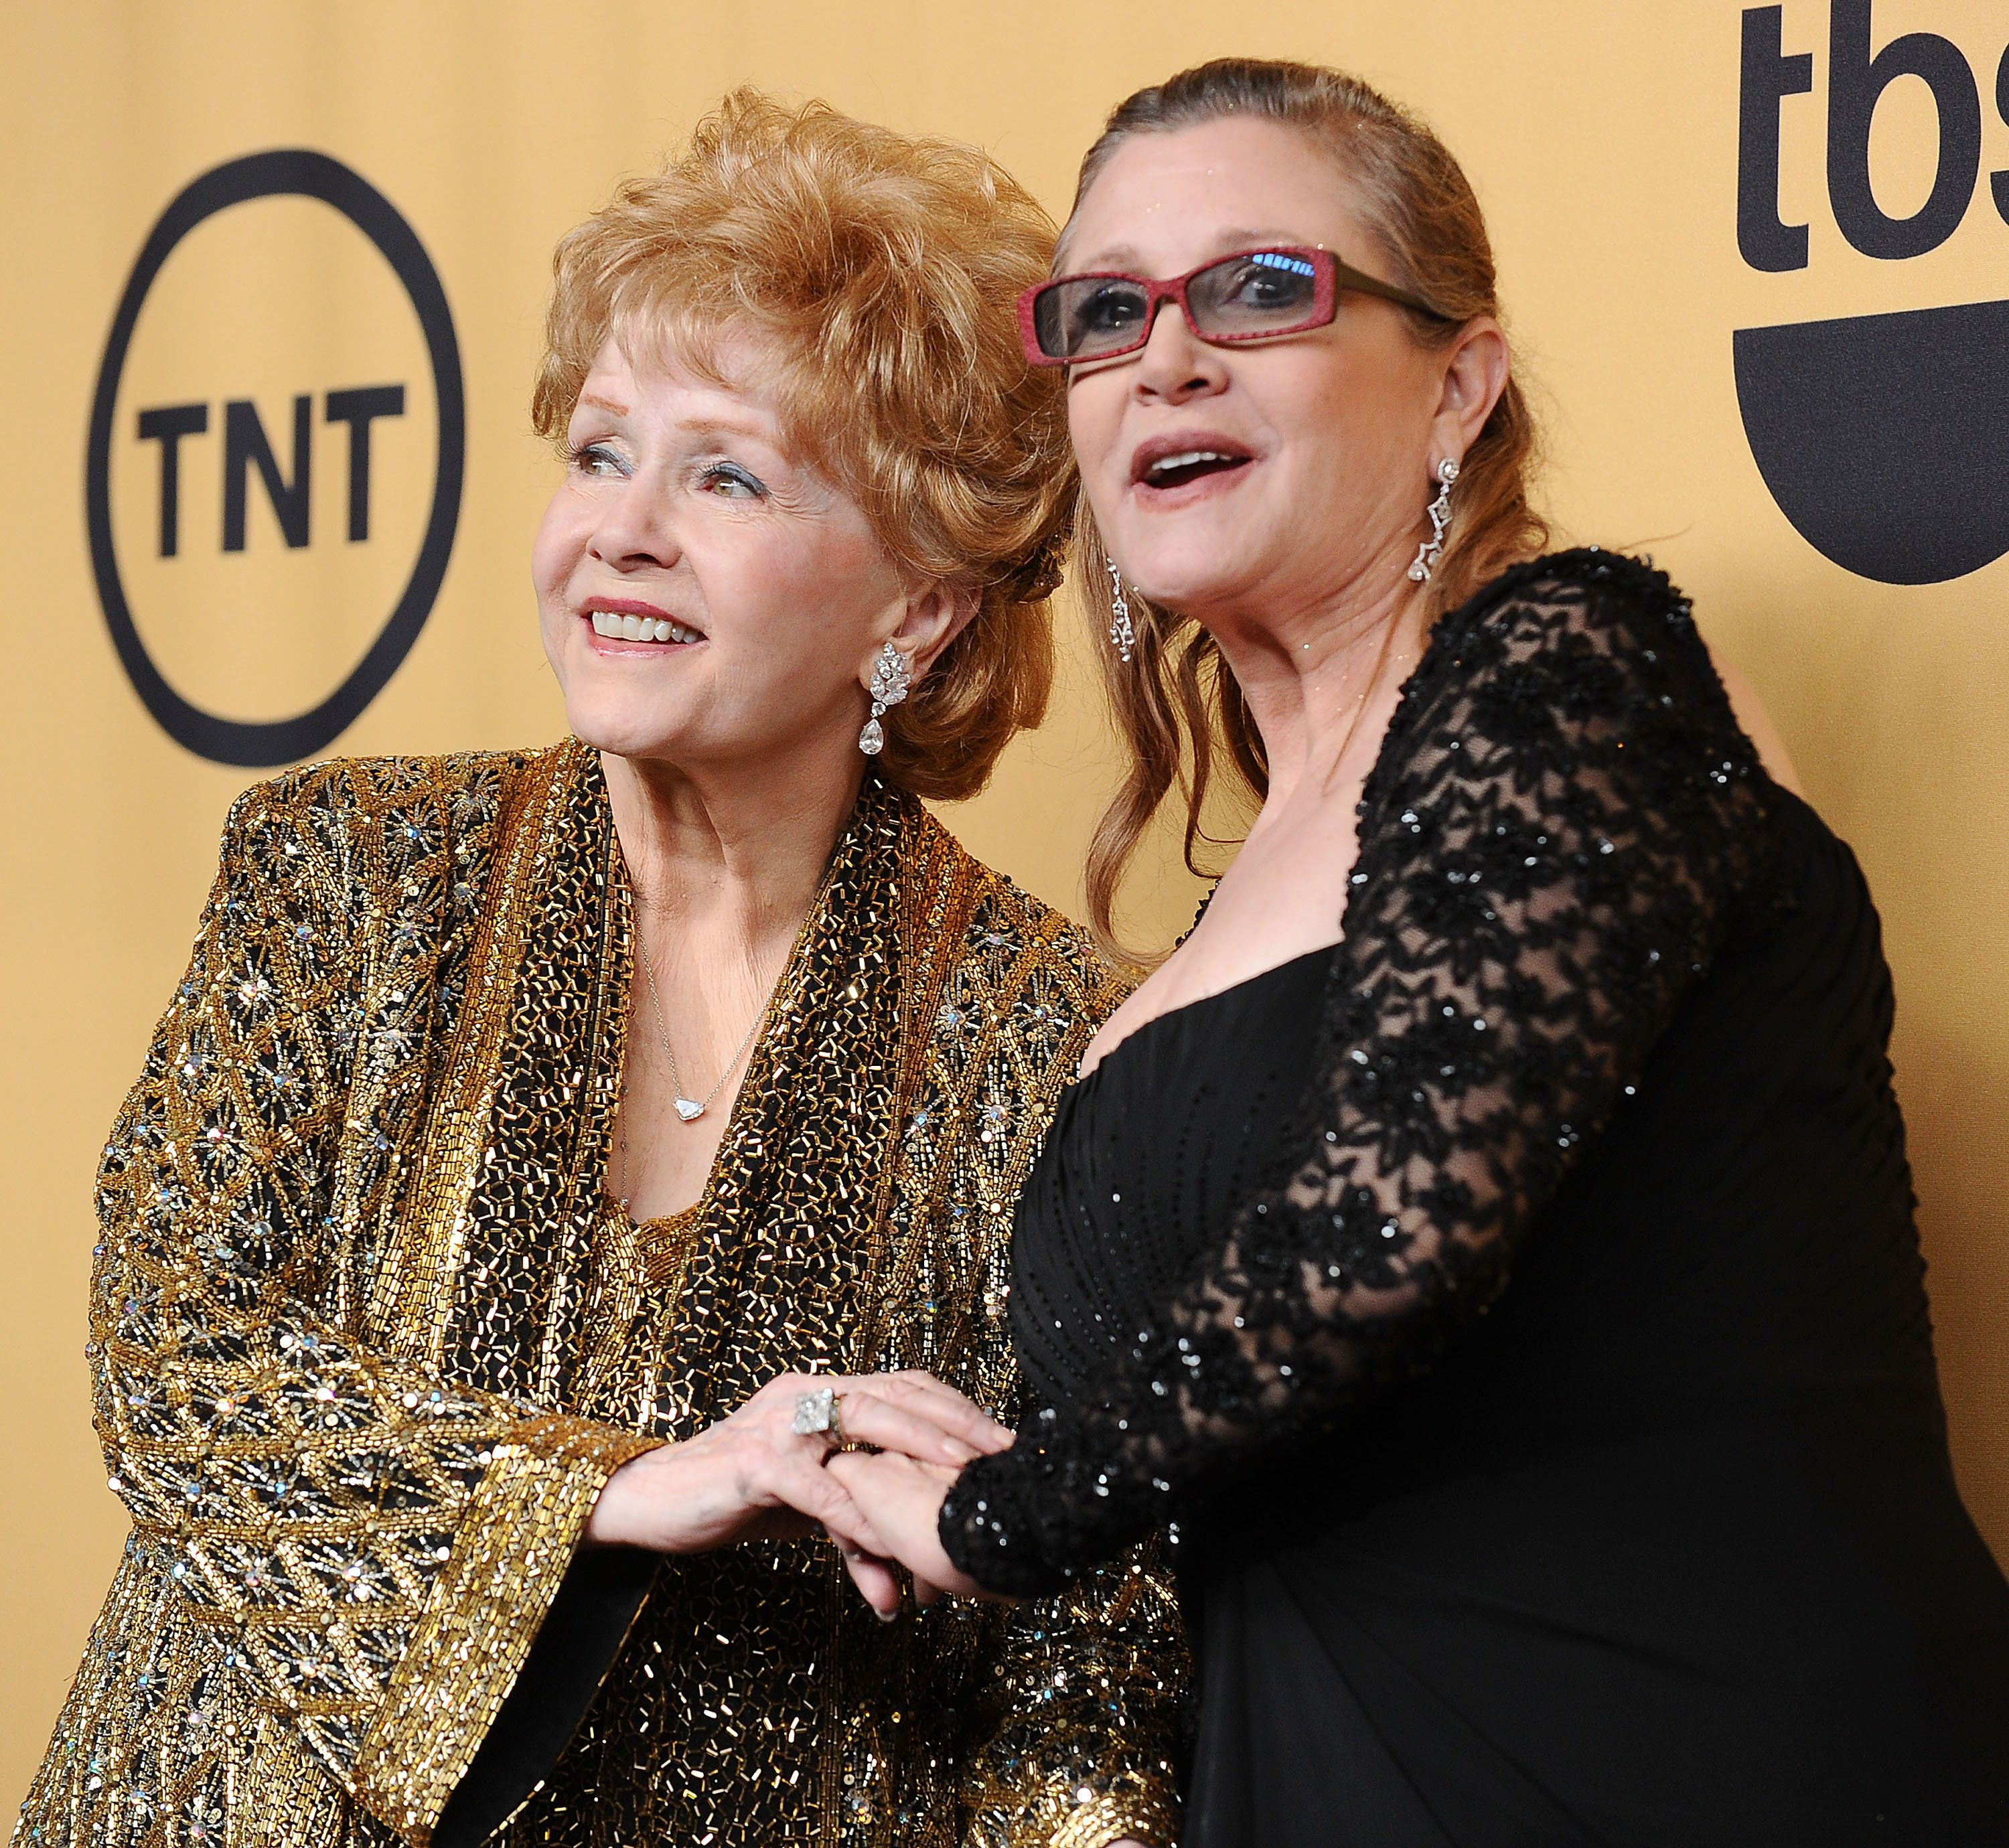 LOS ANGELES, CA - JANUARY 25:  Actresses Debbie Reynolds and Carrie Fisher pose in the press room at the 21st annual Screen Actors Guild Awards at The Shrine Auditorium on January 25, 2015 in Los Angeles, California.  (Photo by Jason LaVeris/FilmMagic)